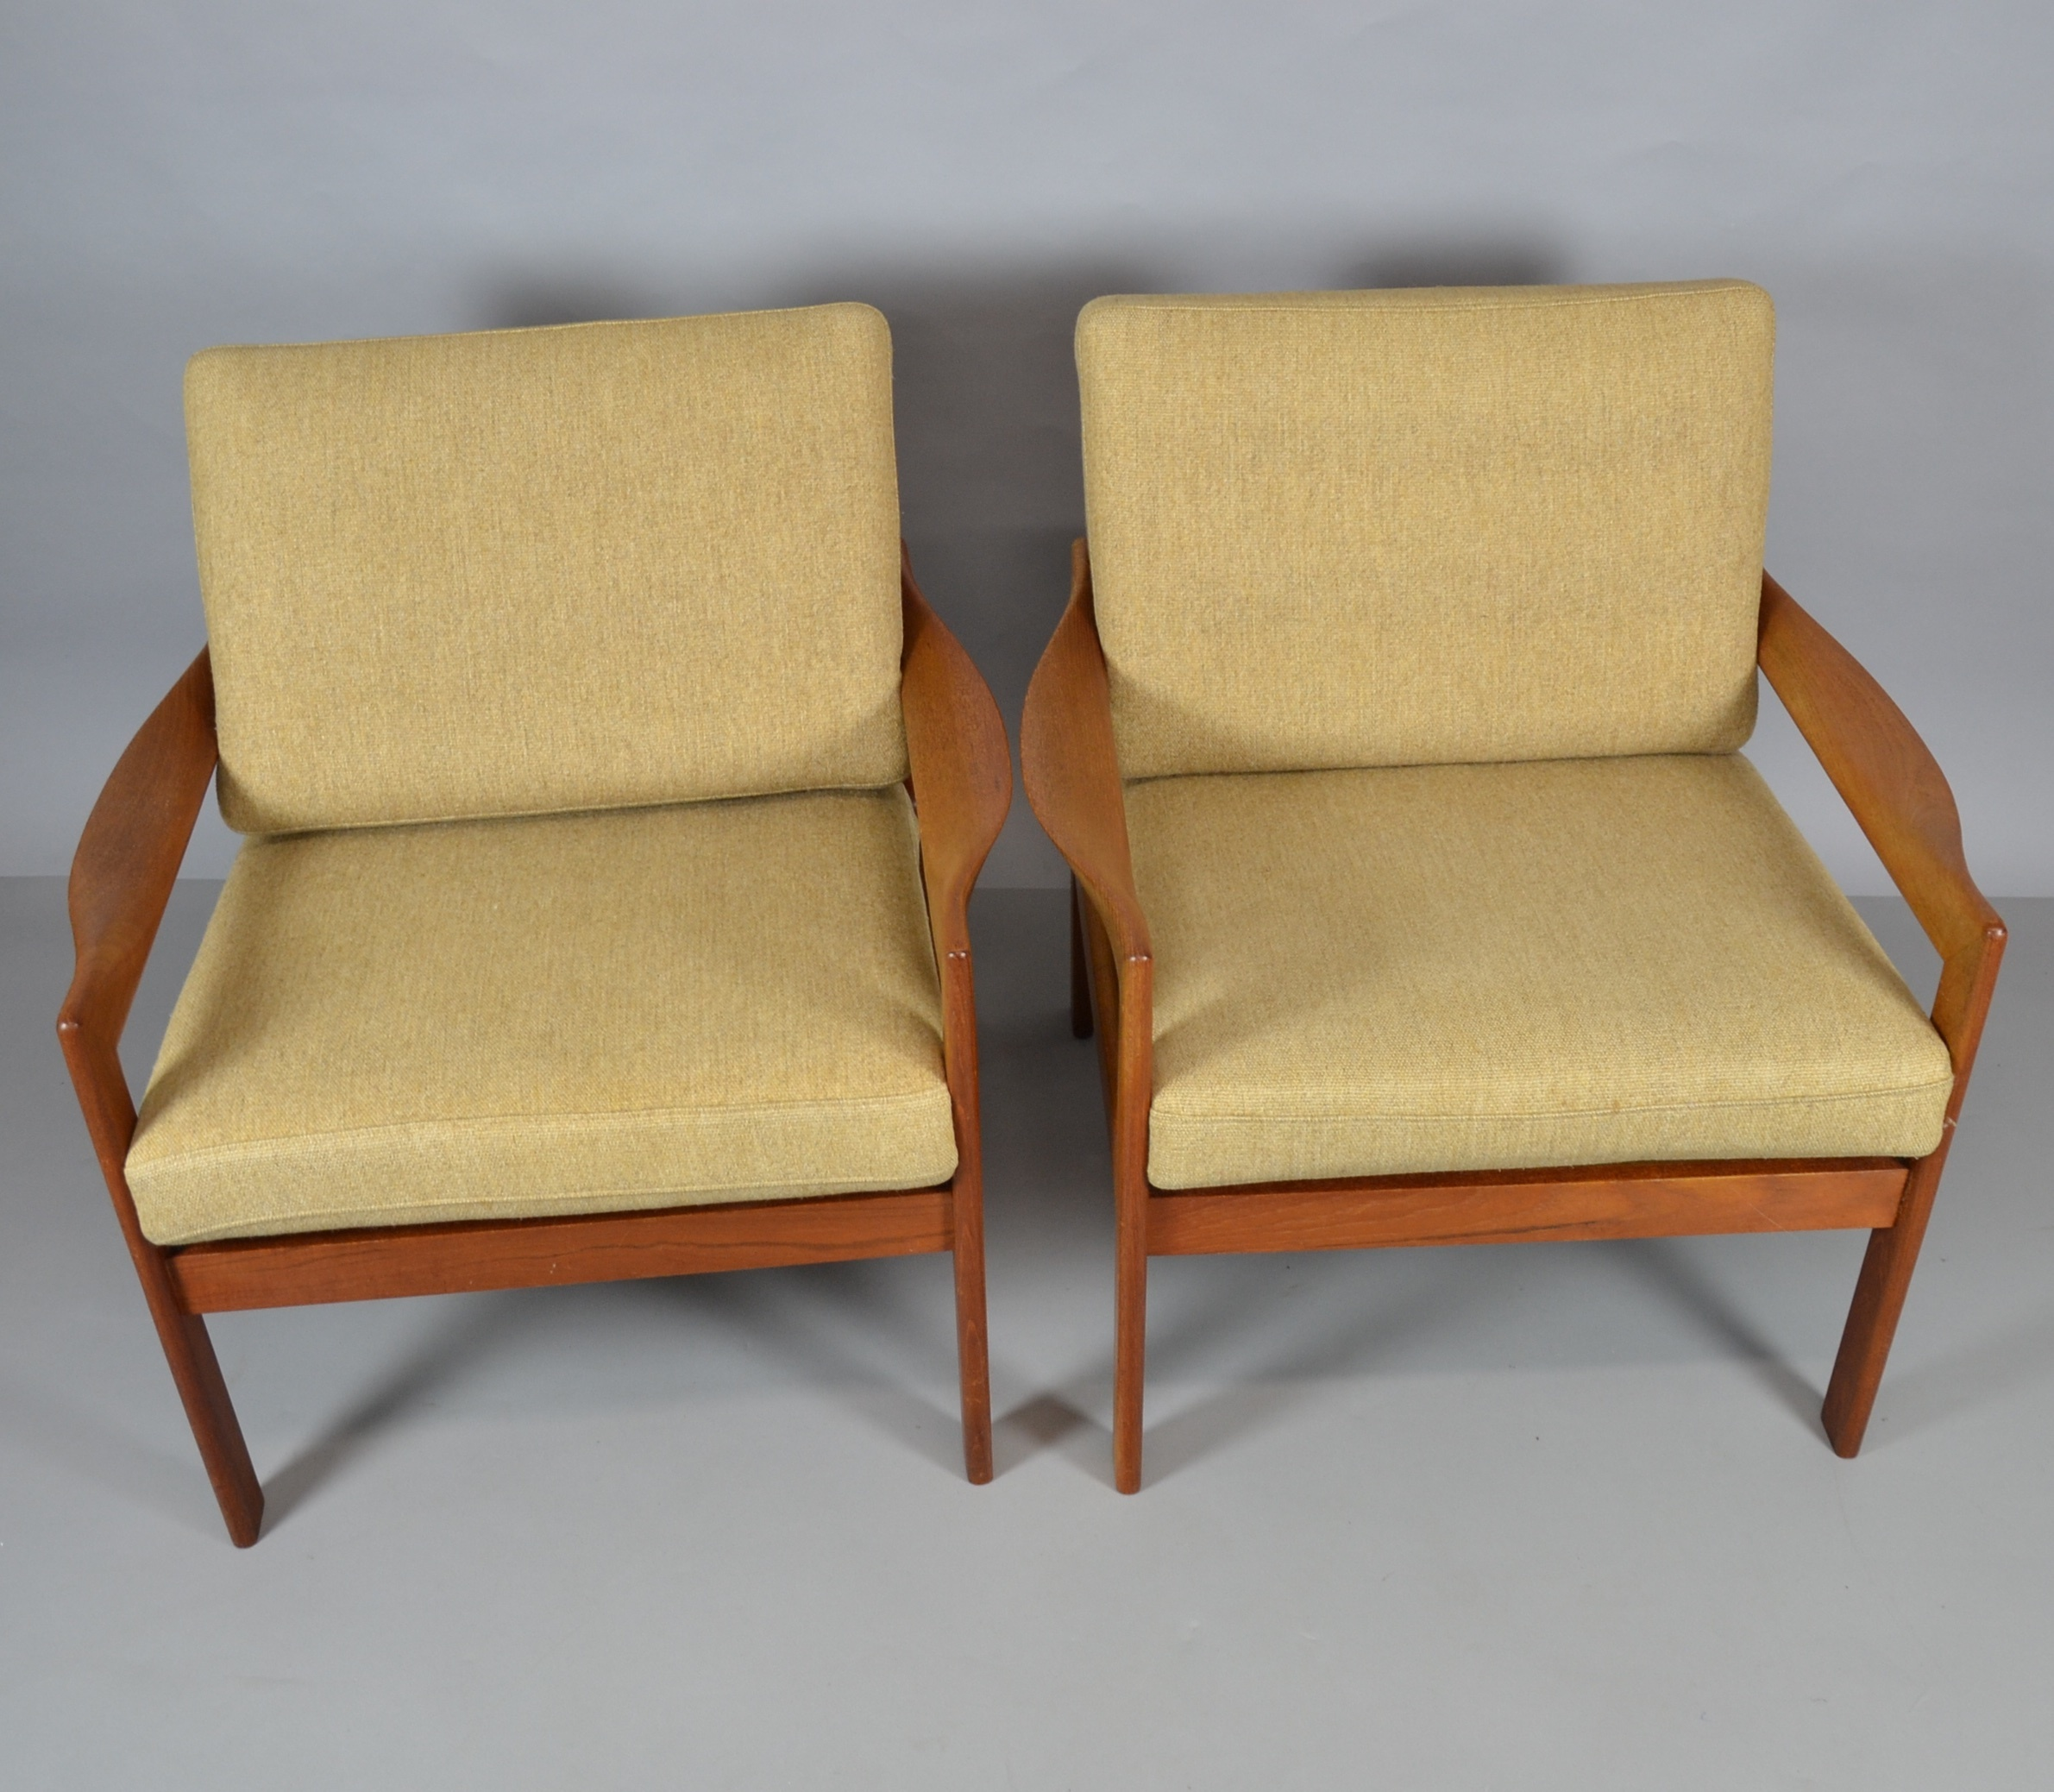 Sessel Für 2 Illum WikkelsØ 2 Sessel Furniture Sofas Seatings Auctionet